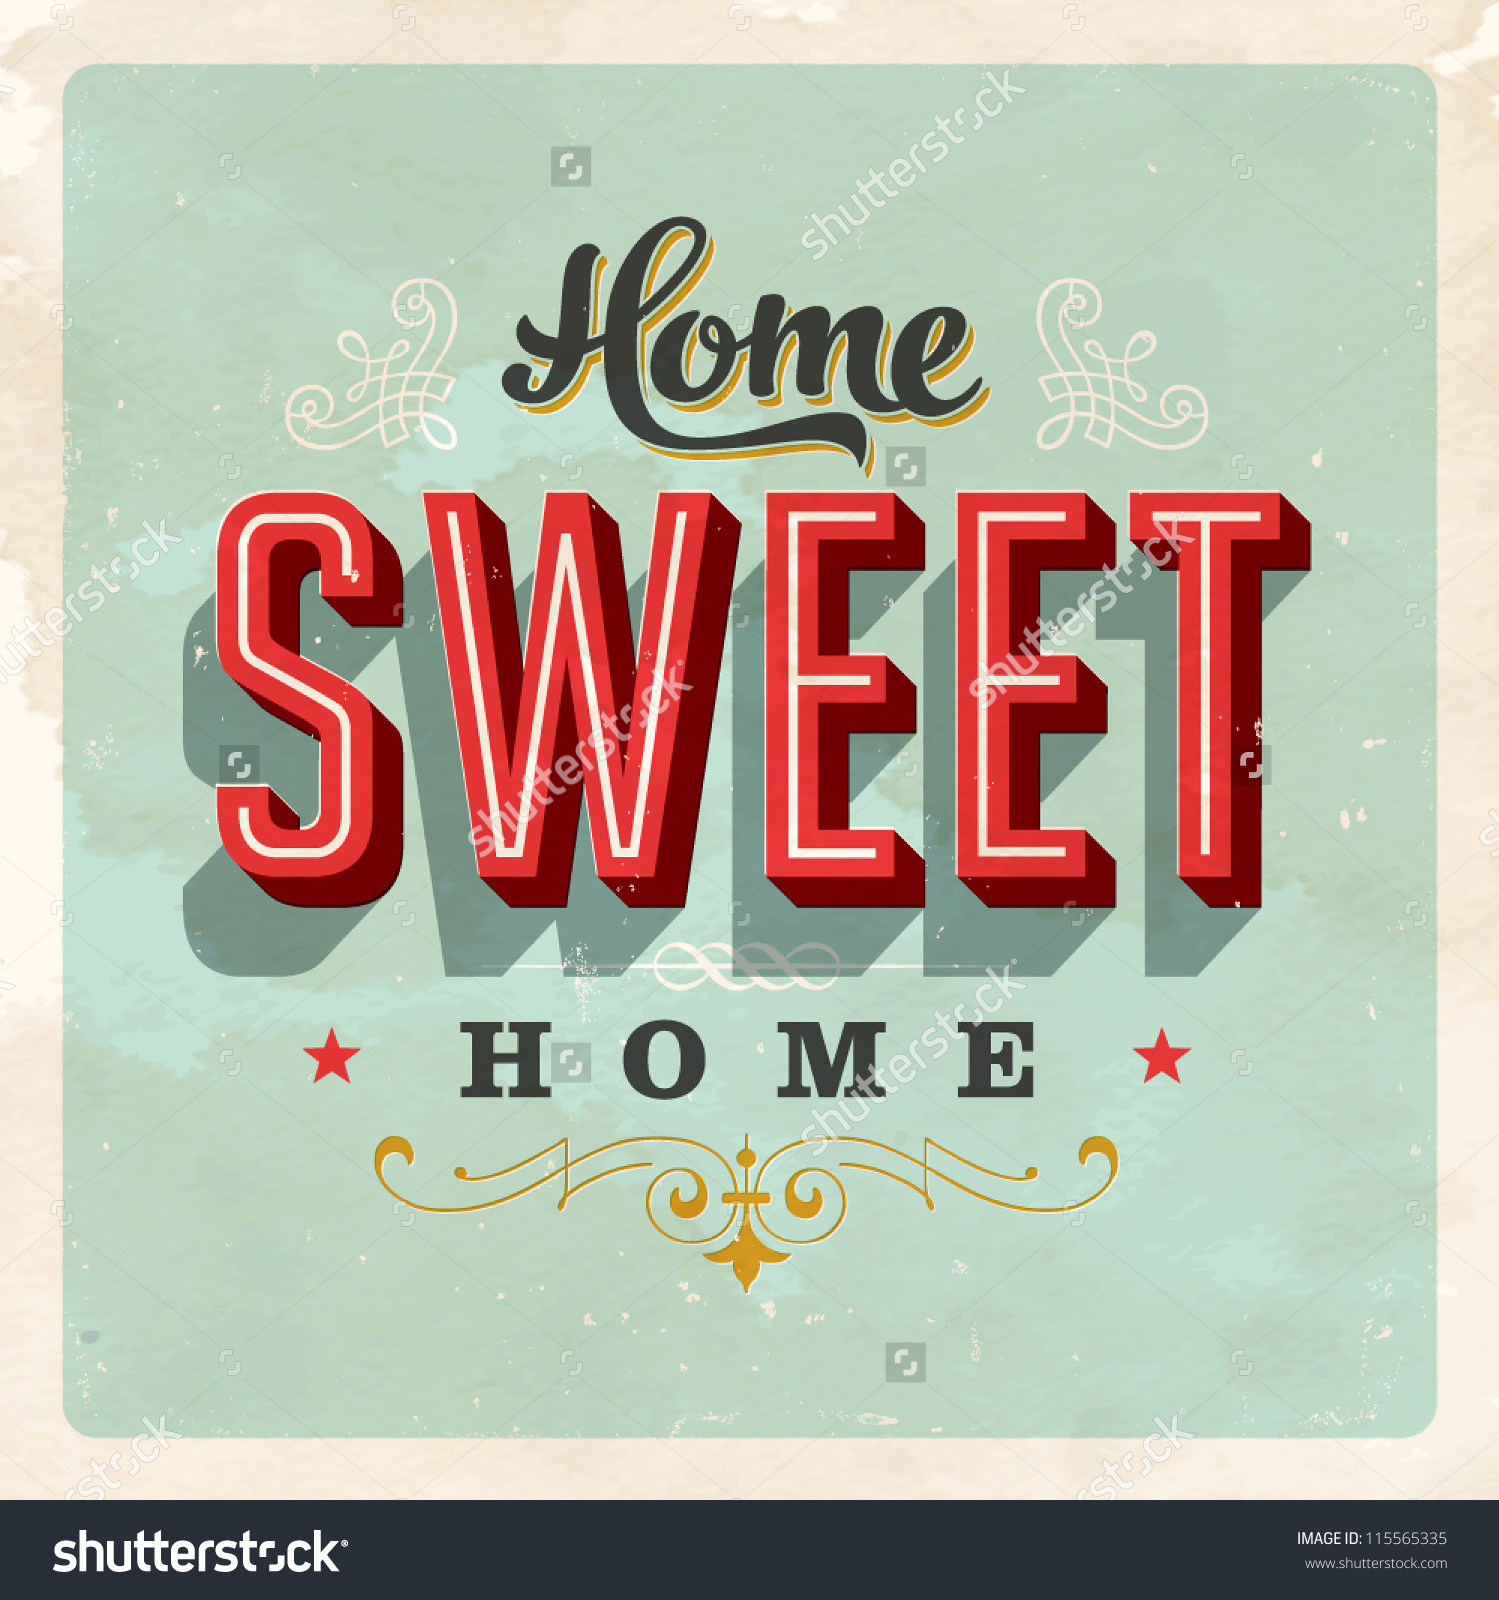 Home Sweet Home Pics, Movie Collection